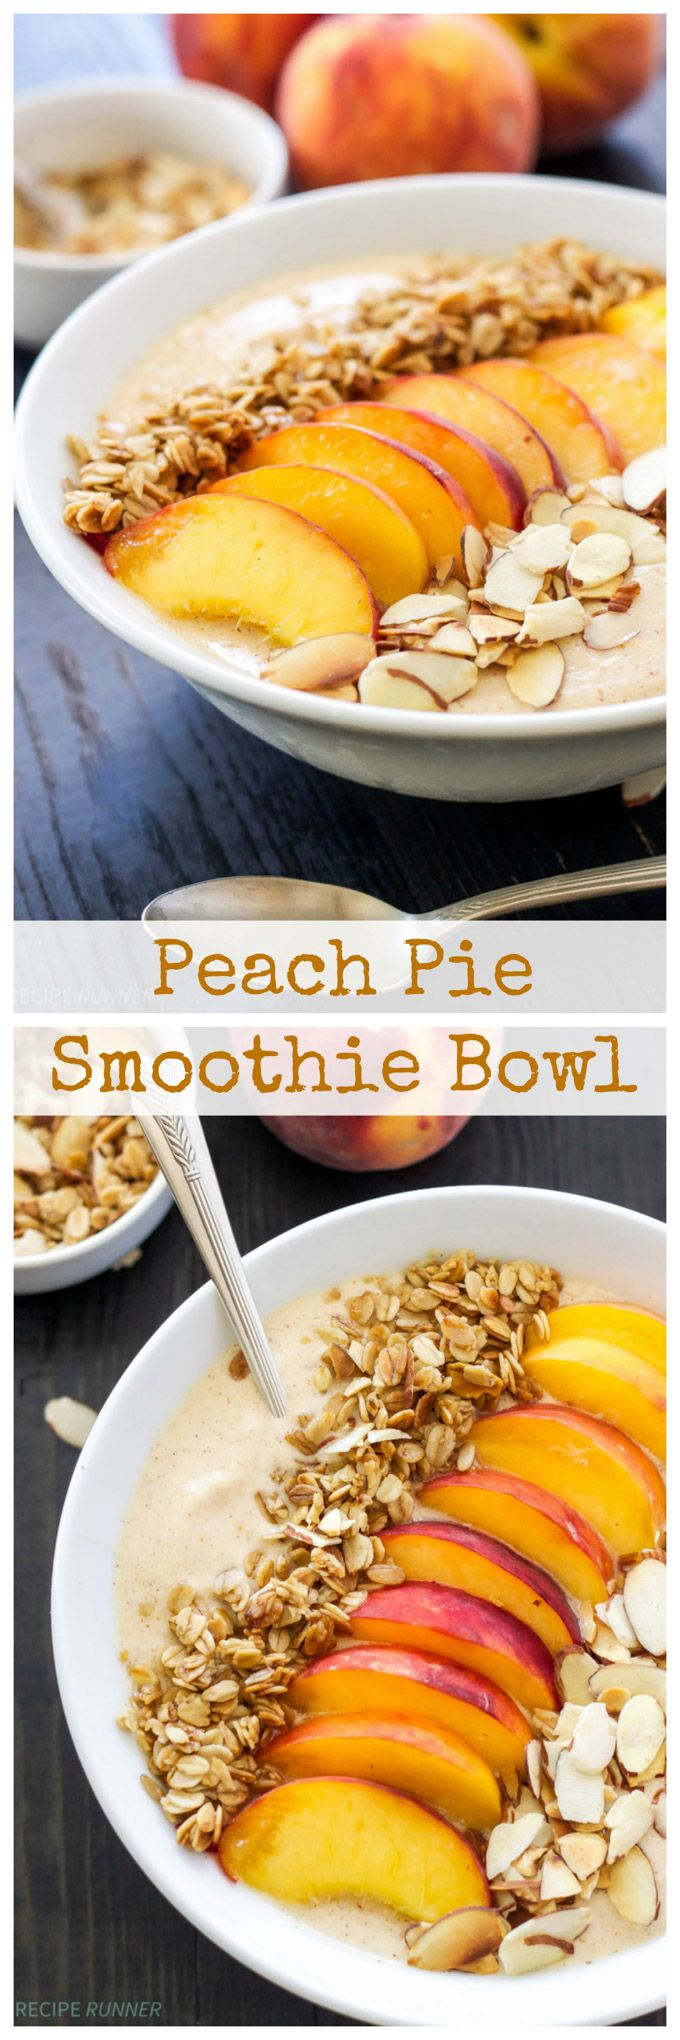 Peach Pie Smoothie Bowl | Pour your smoothie into a bowl and cover it with delicious peach pie inspired toppings!